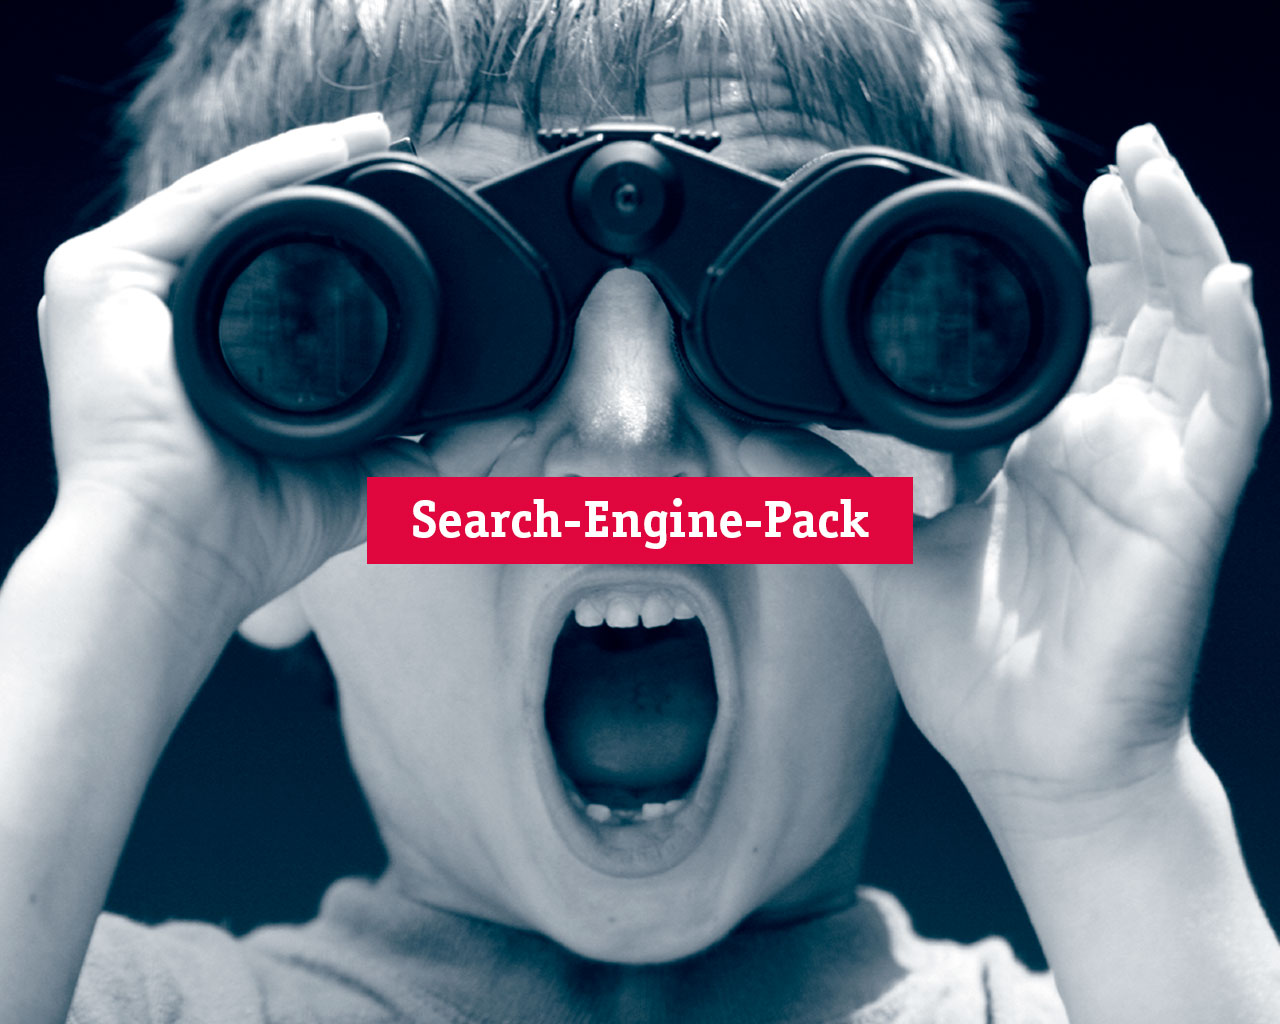 search-engine-pack zB3